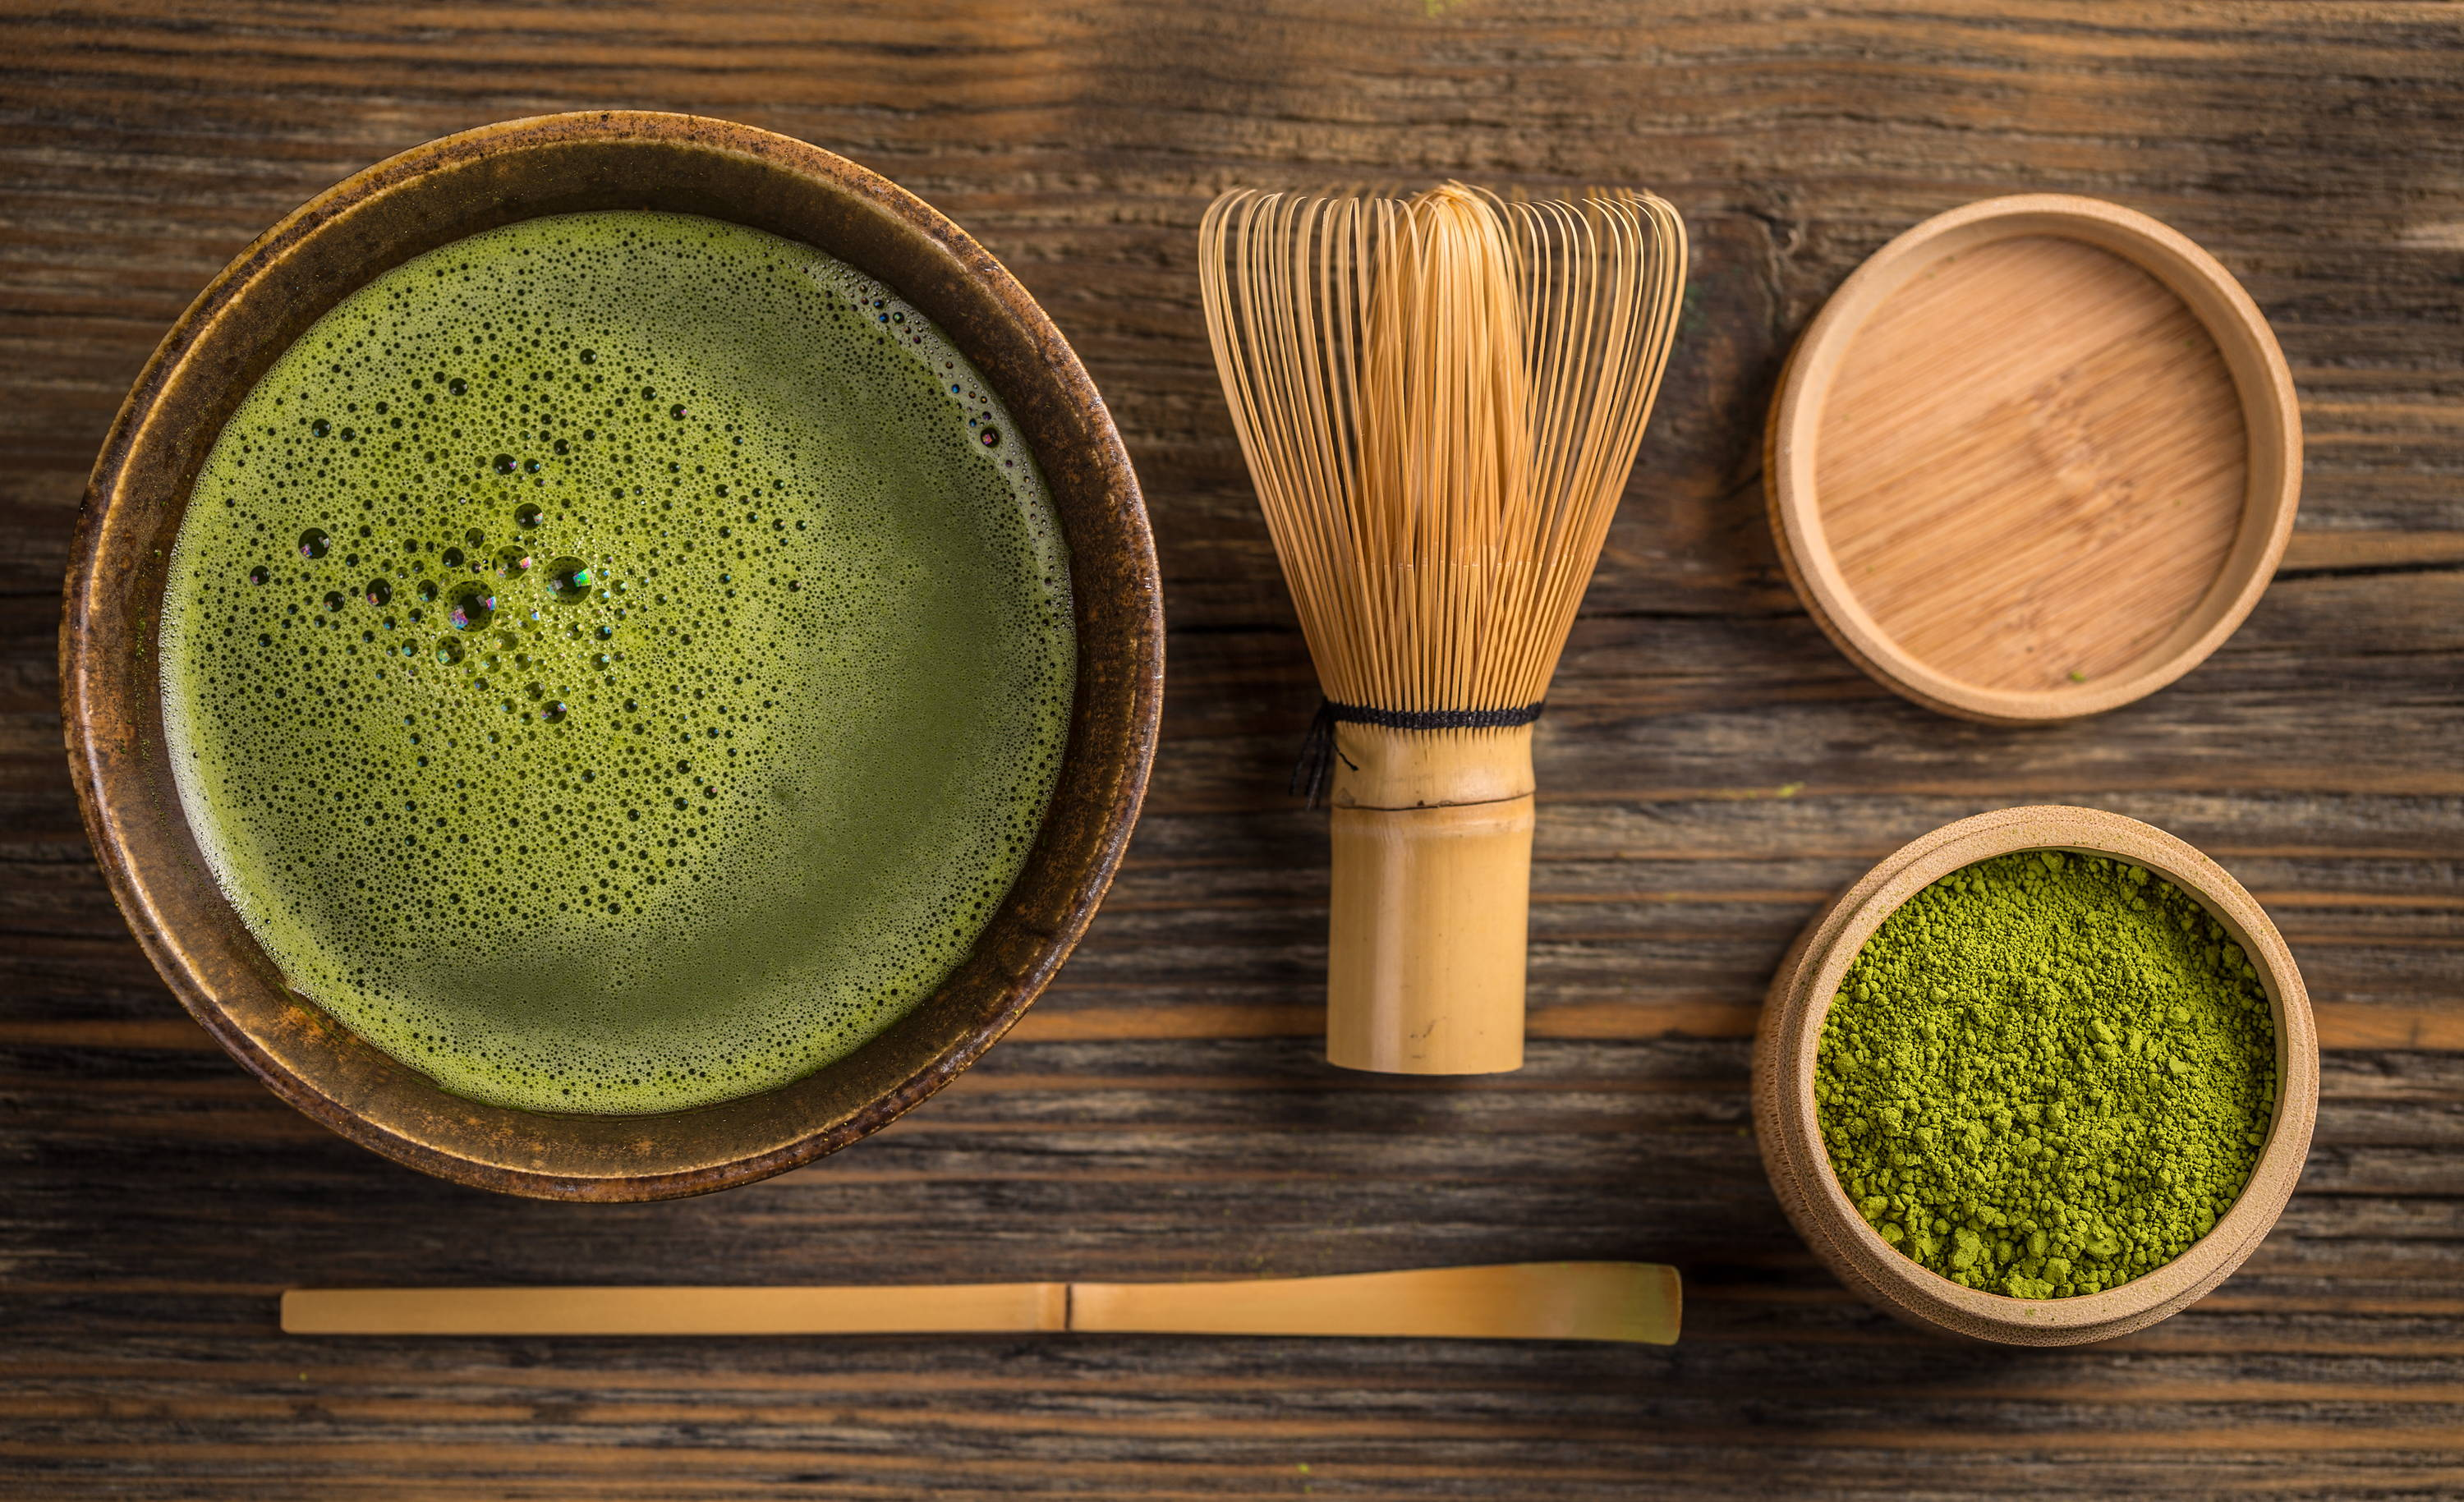 A bowl of matcha and matcha kits